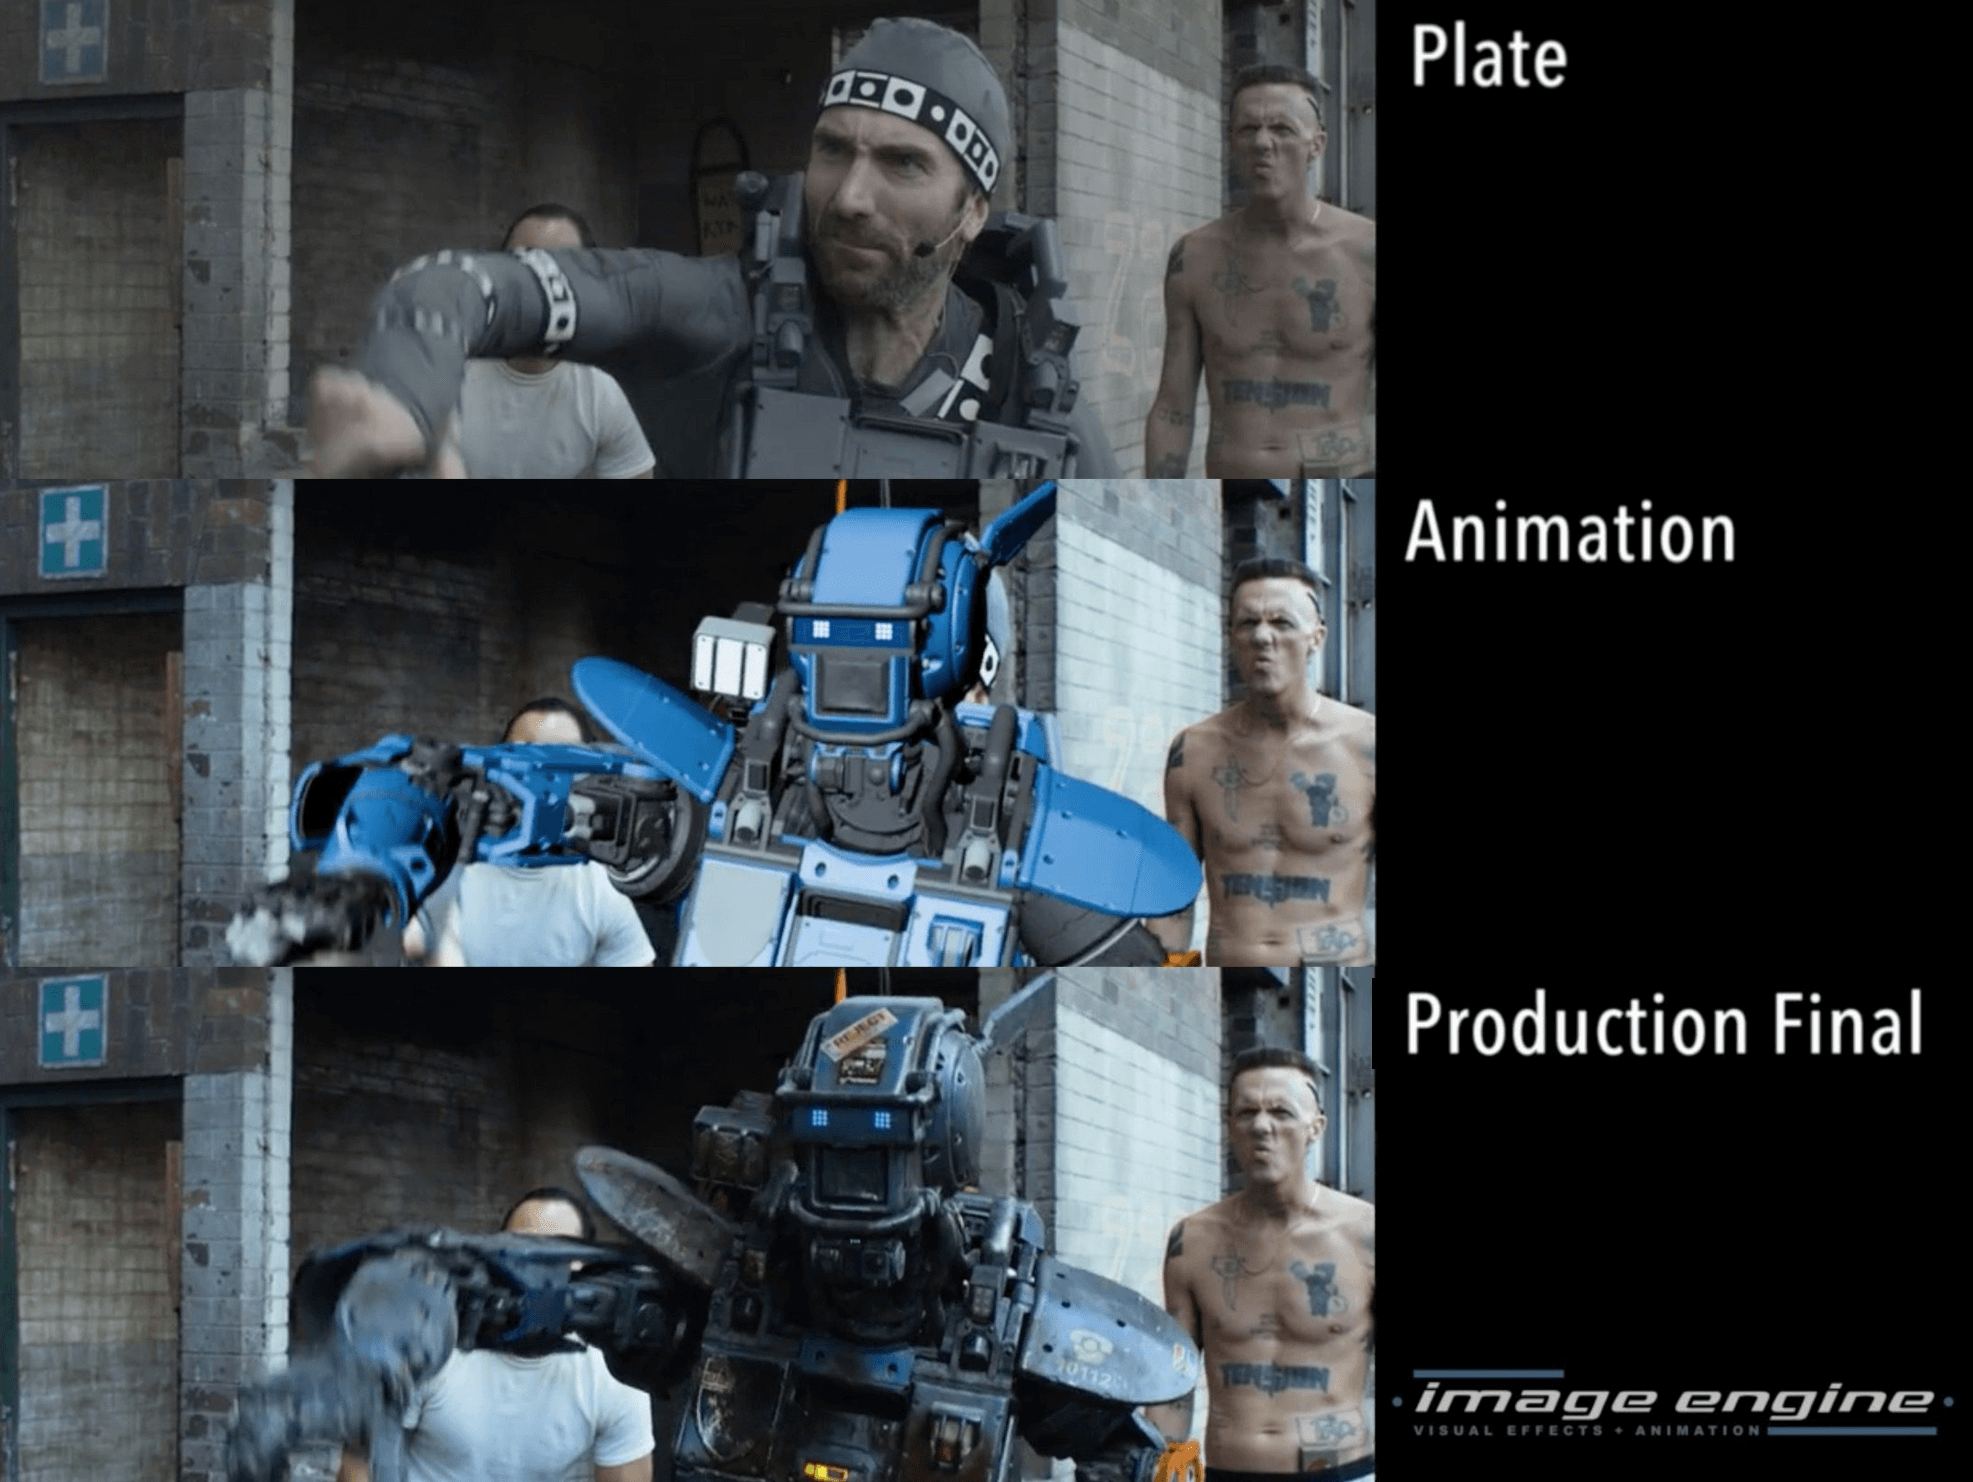 CGI Production: How 3D Artists Create New Worlds (part 1)